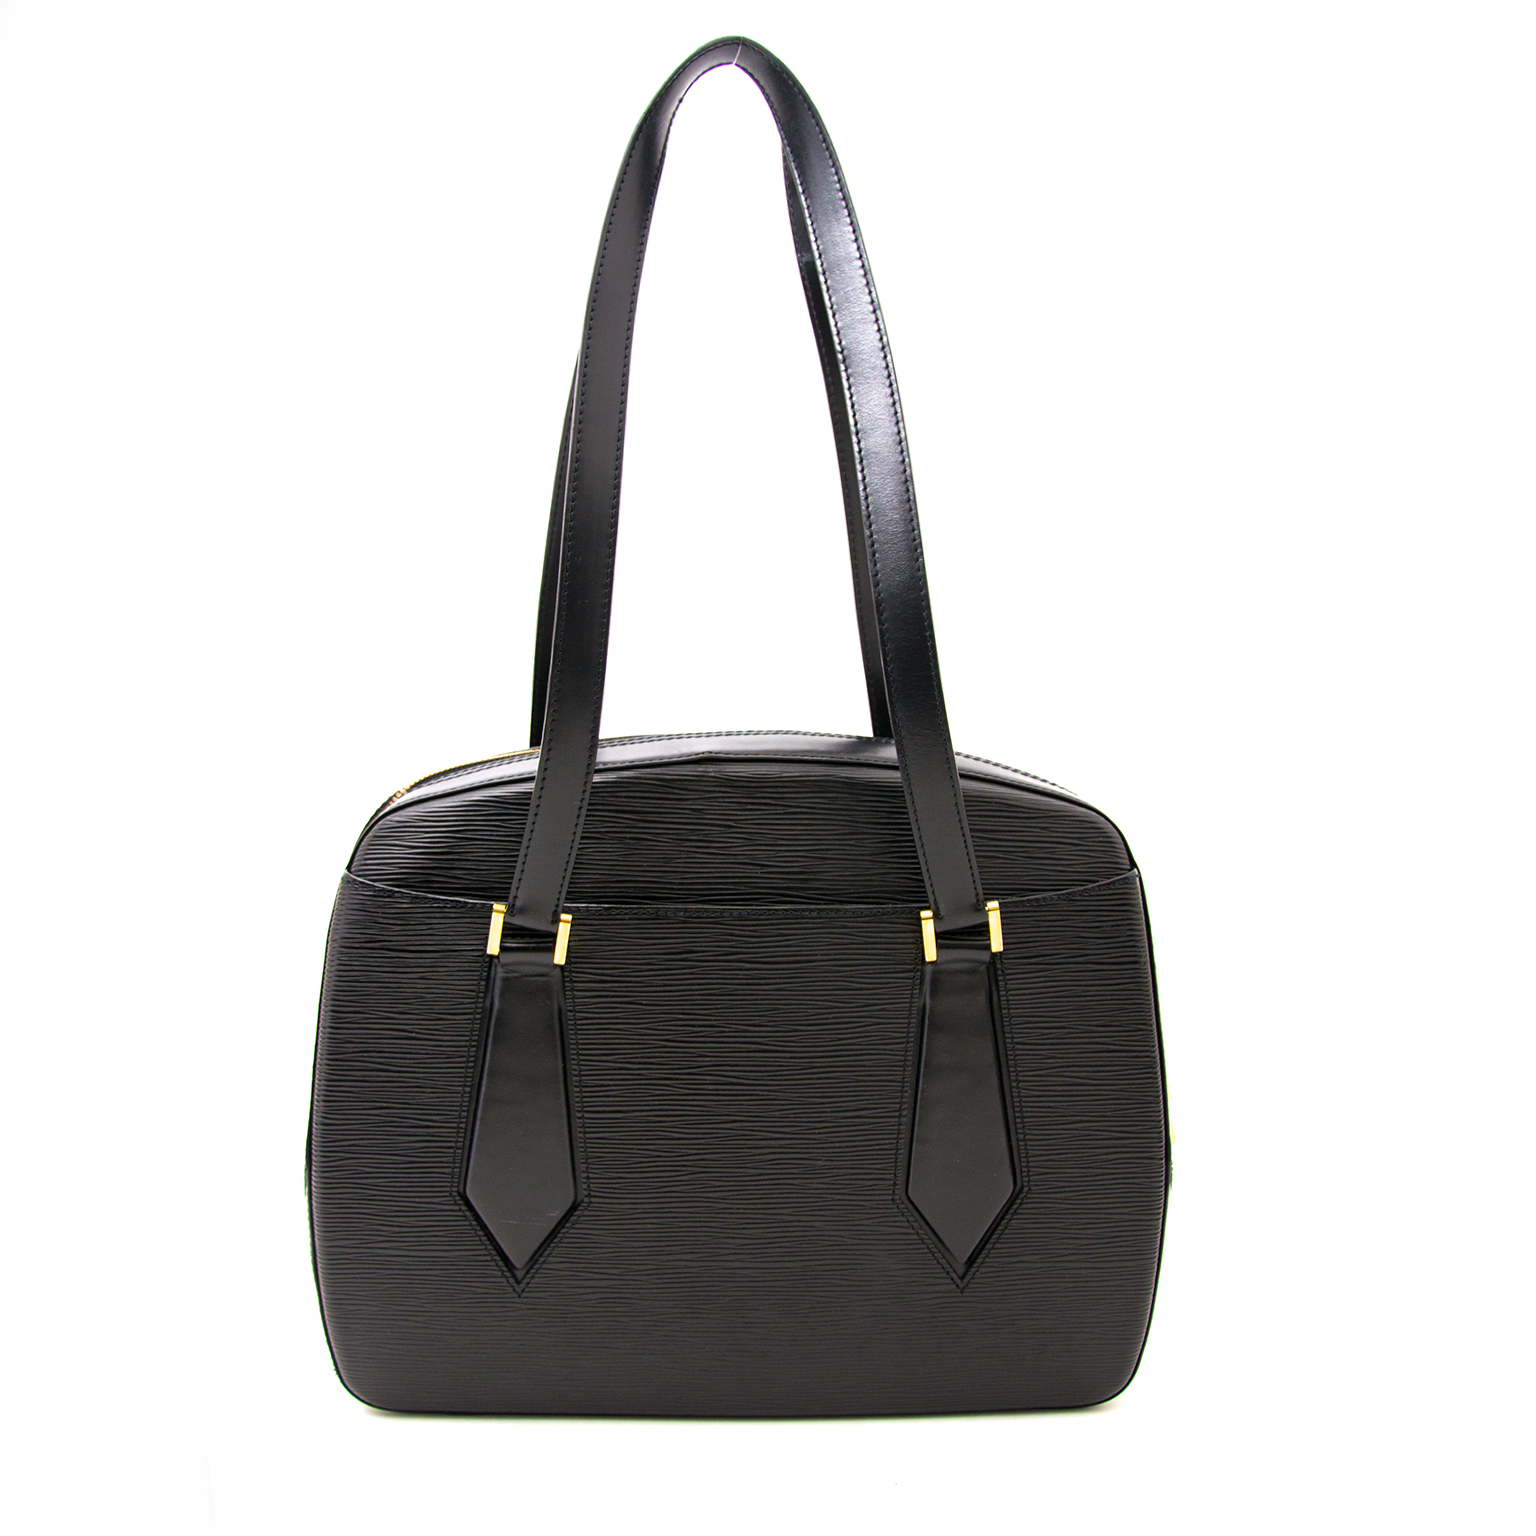 60b0fb09f6d3 On the shop safe online secondhand Elegant shoulder bag for everyday use.  On the outside is an · Louis Vuitton